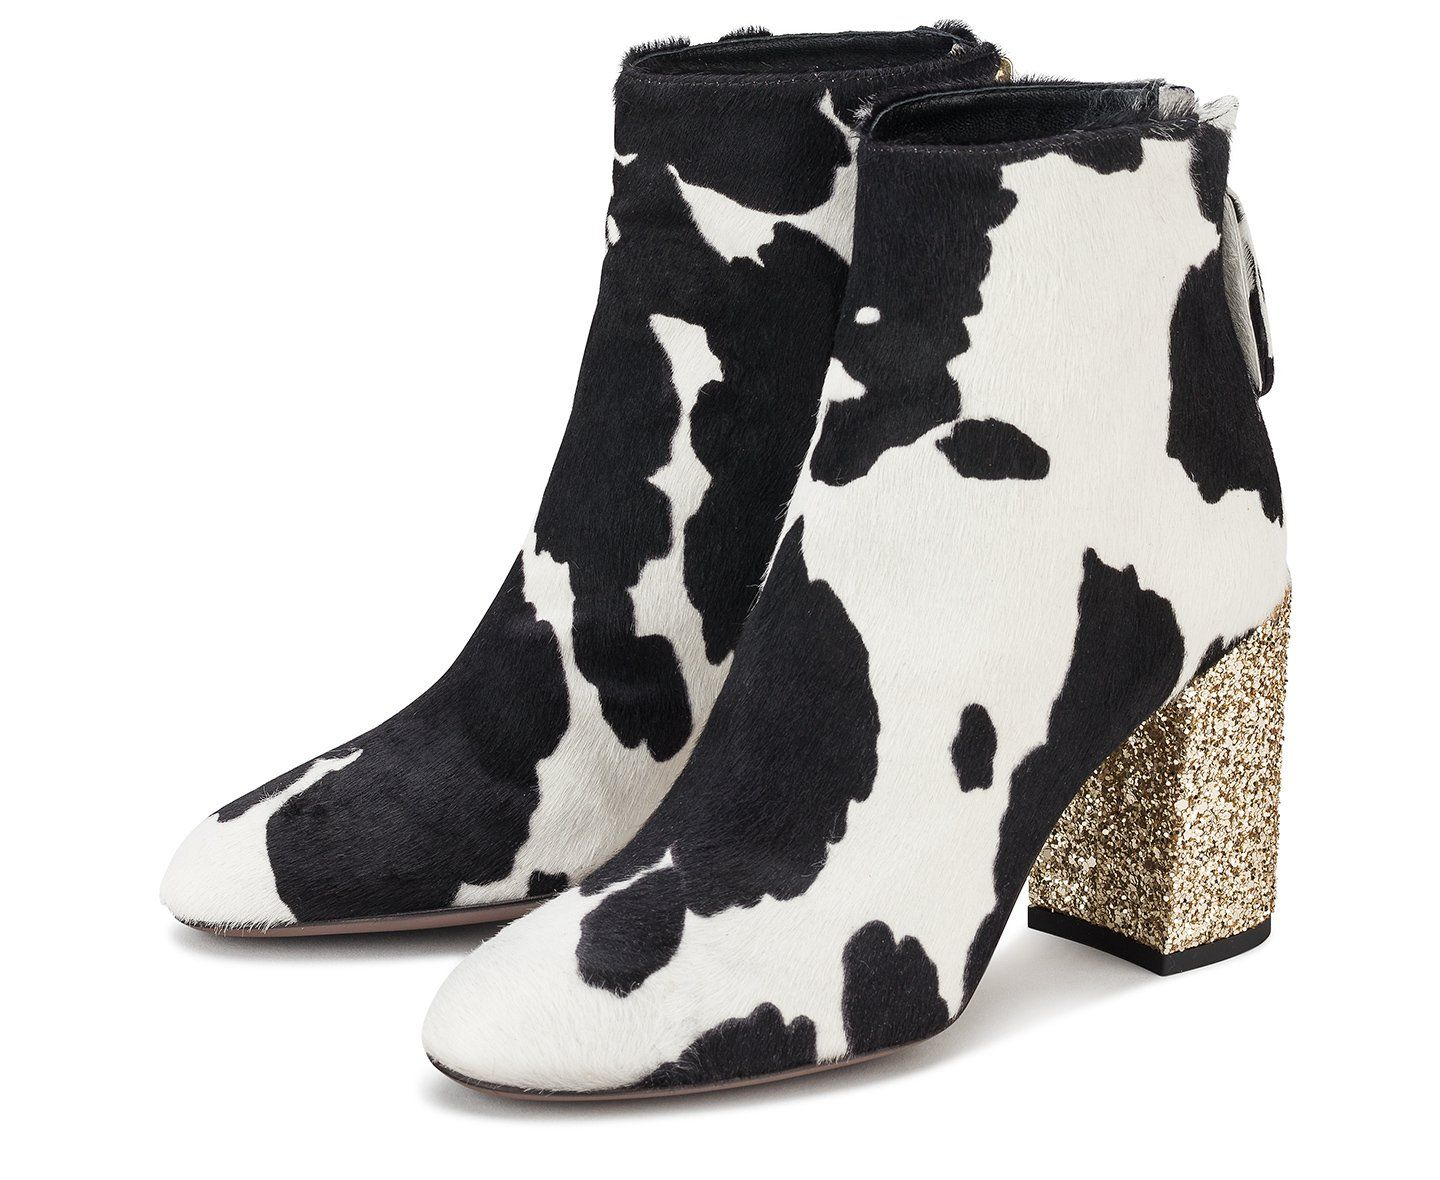 big sale top design new lower prices Ankle boot with cow print - Shoes AGL Shop Online | Shoe print